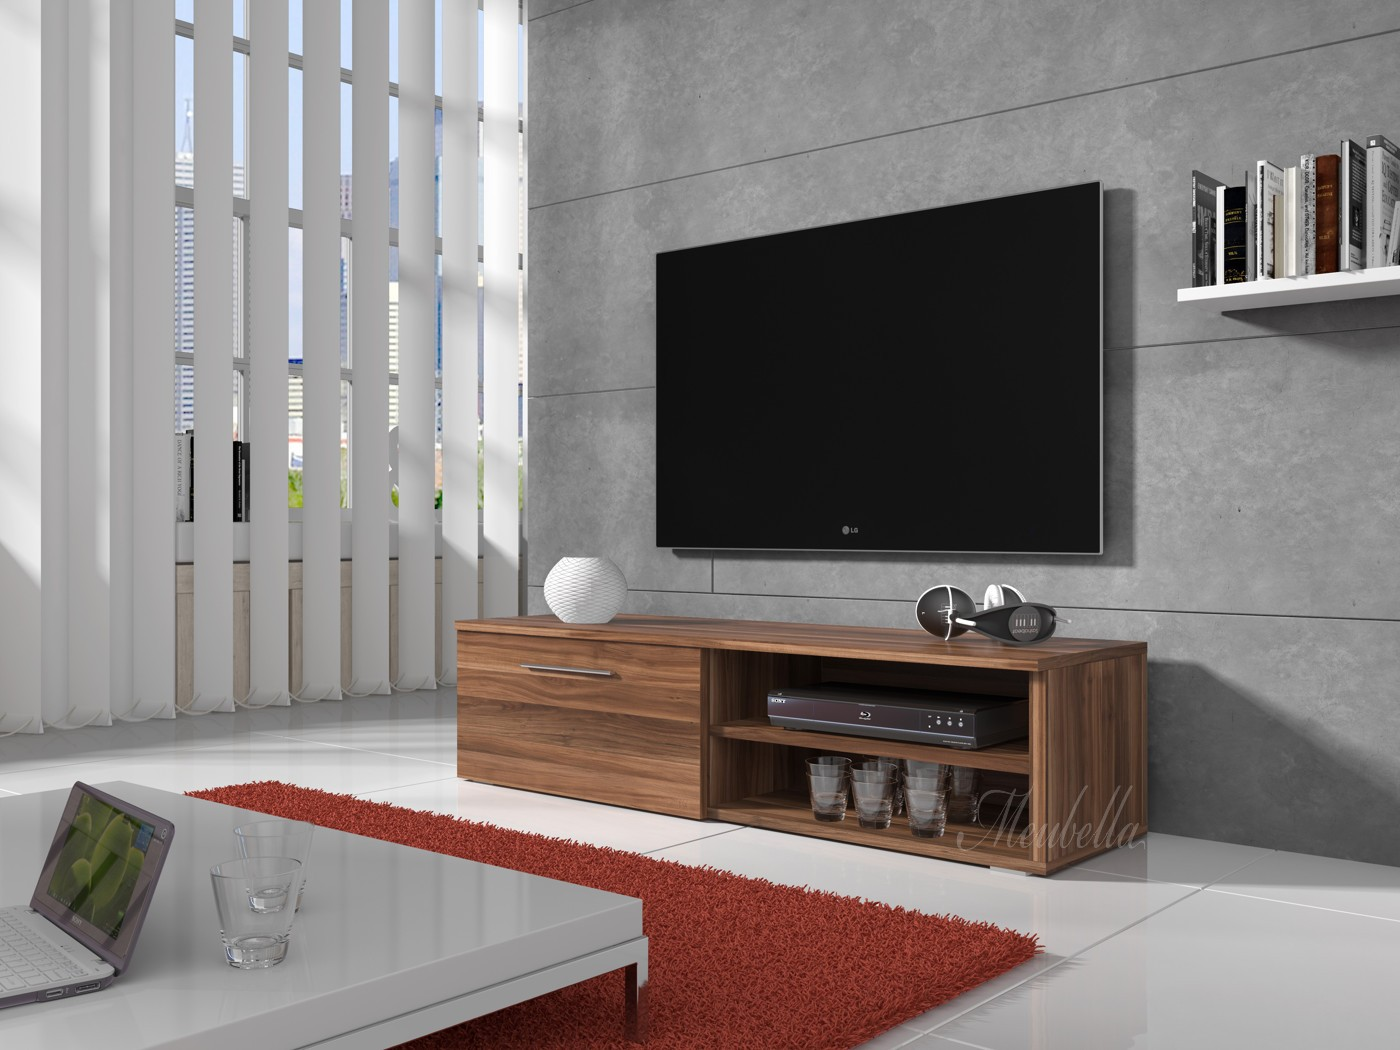 Tv meubel bash eiken 120 cm meubella for Tv meubel design